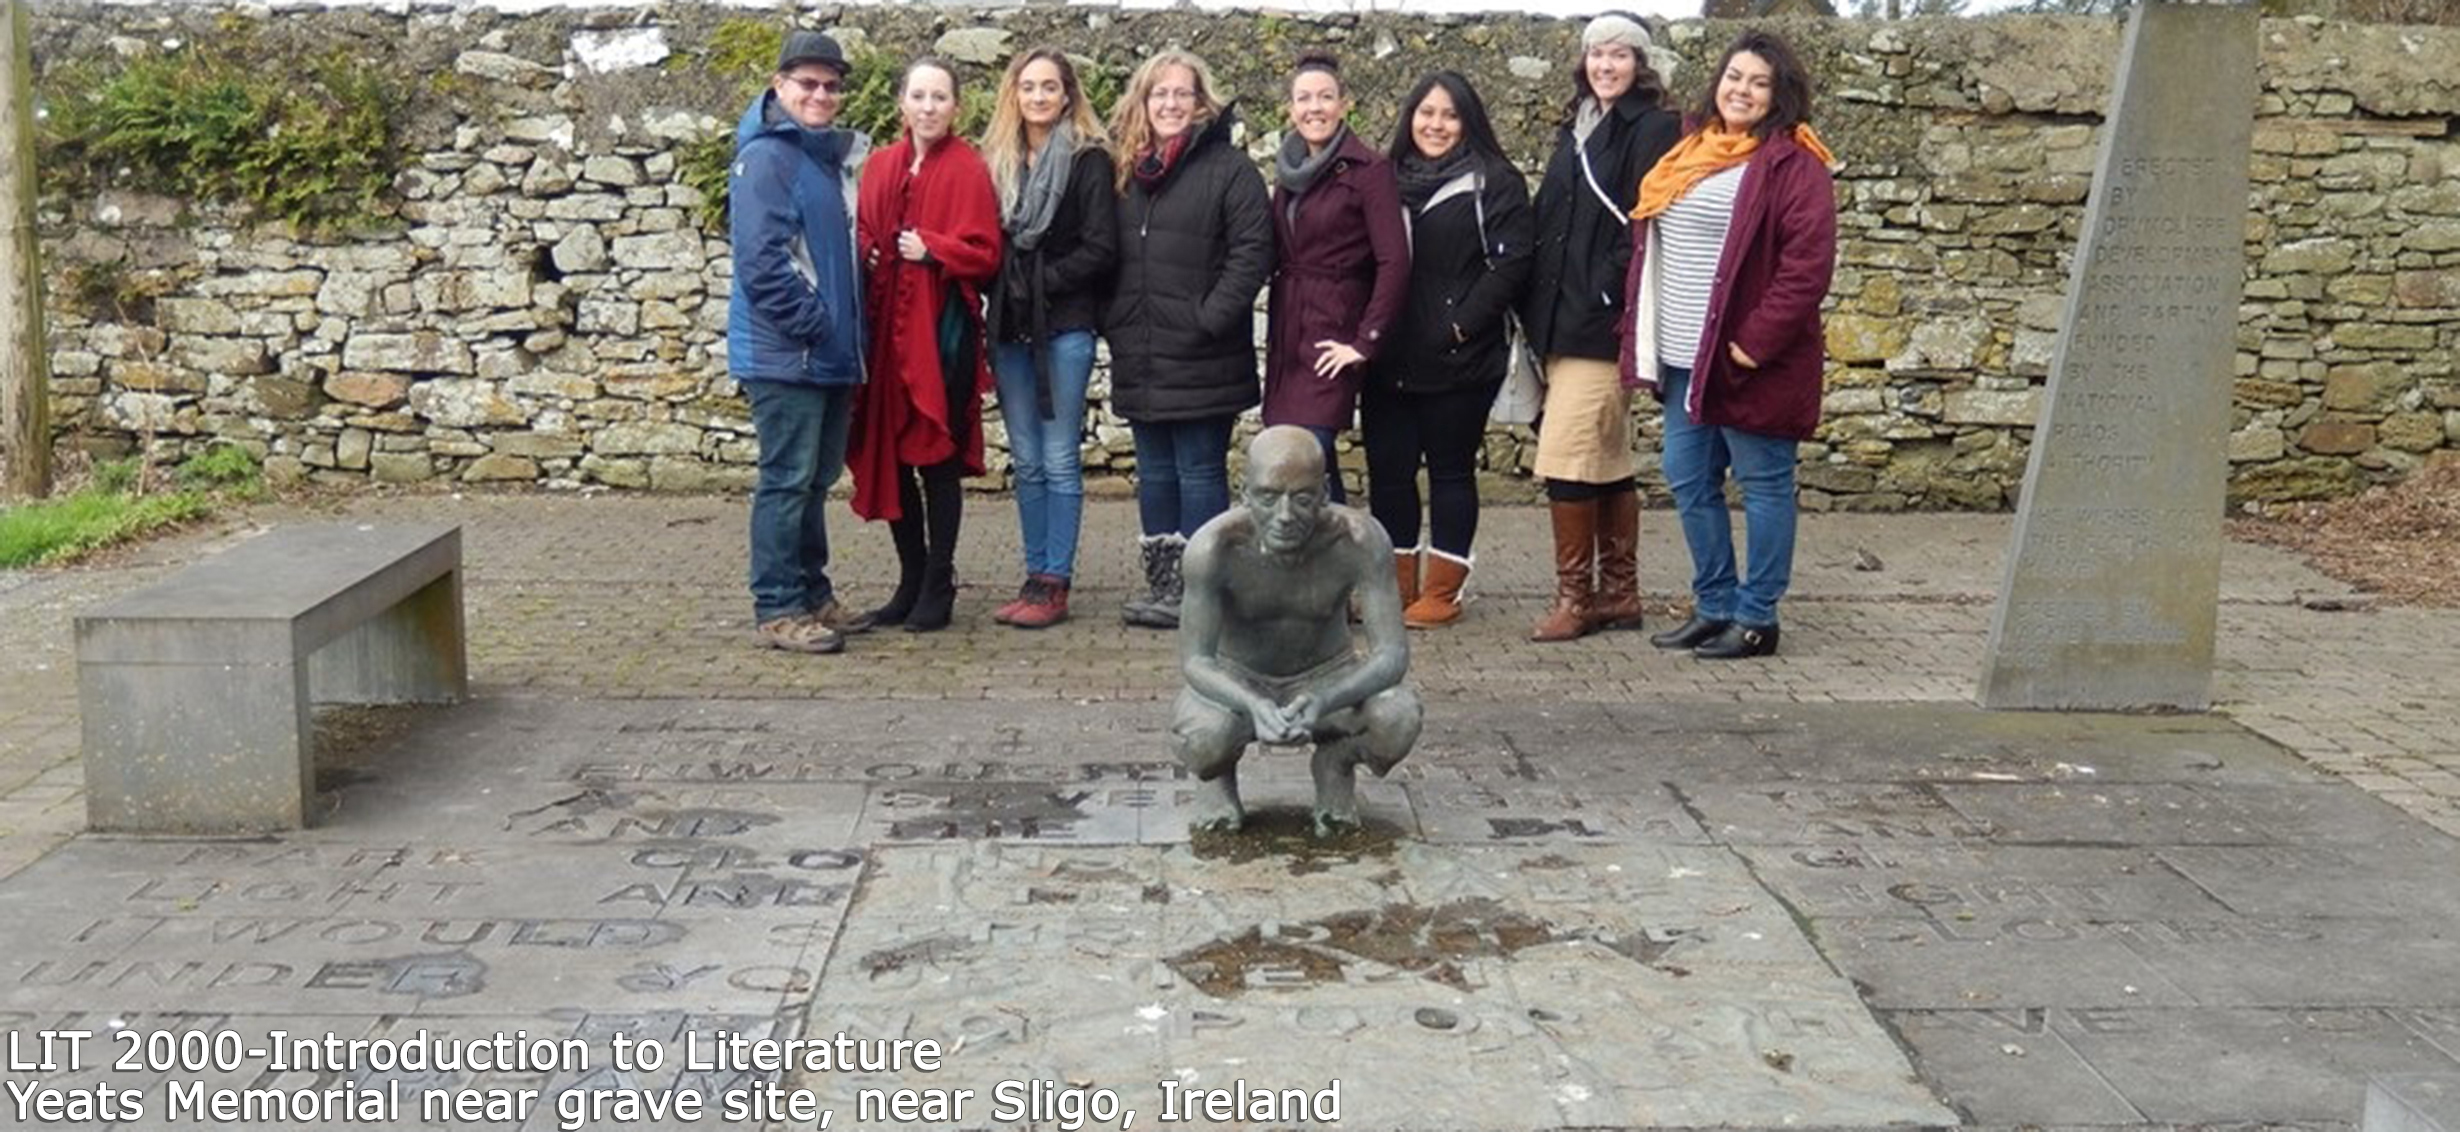 LIT 2000 - Introduction to Literature class at Yeats Memorial near grave site, near Sligo, Ireland